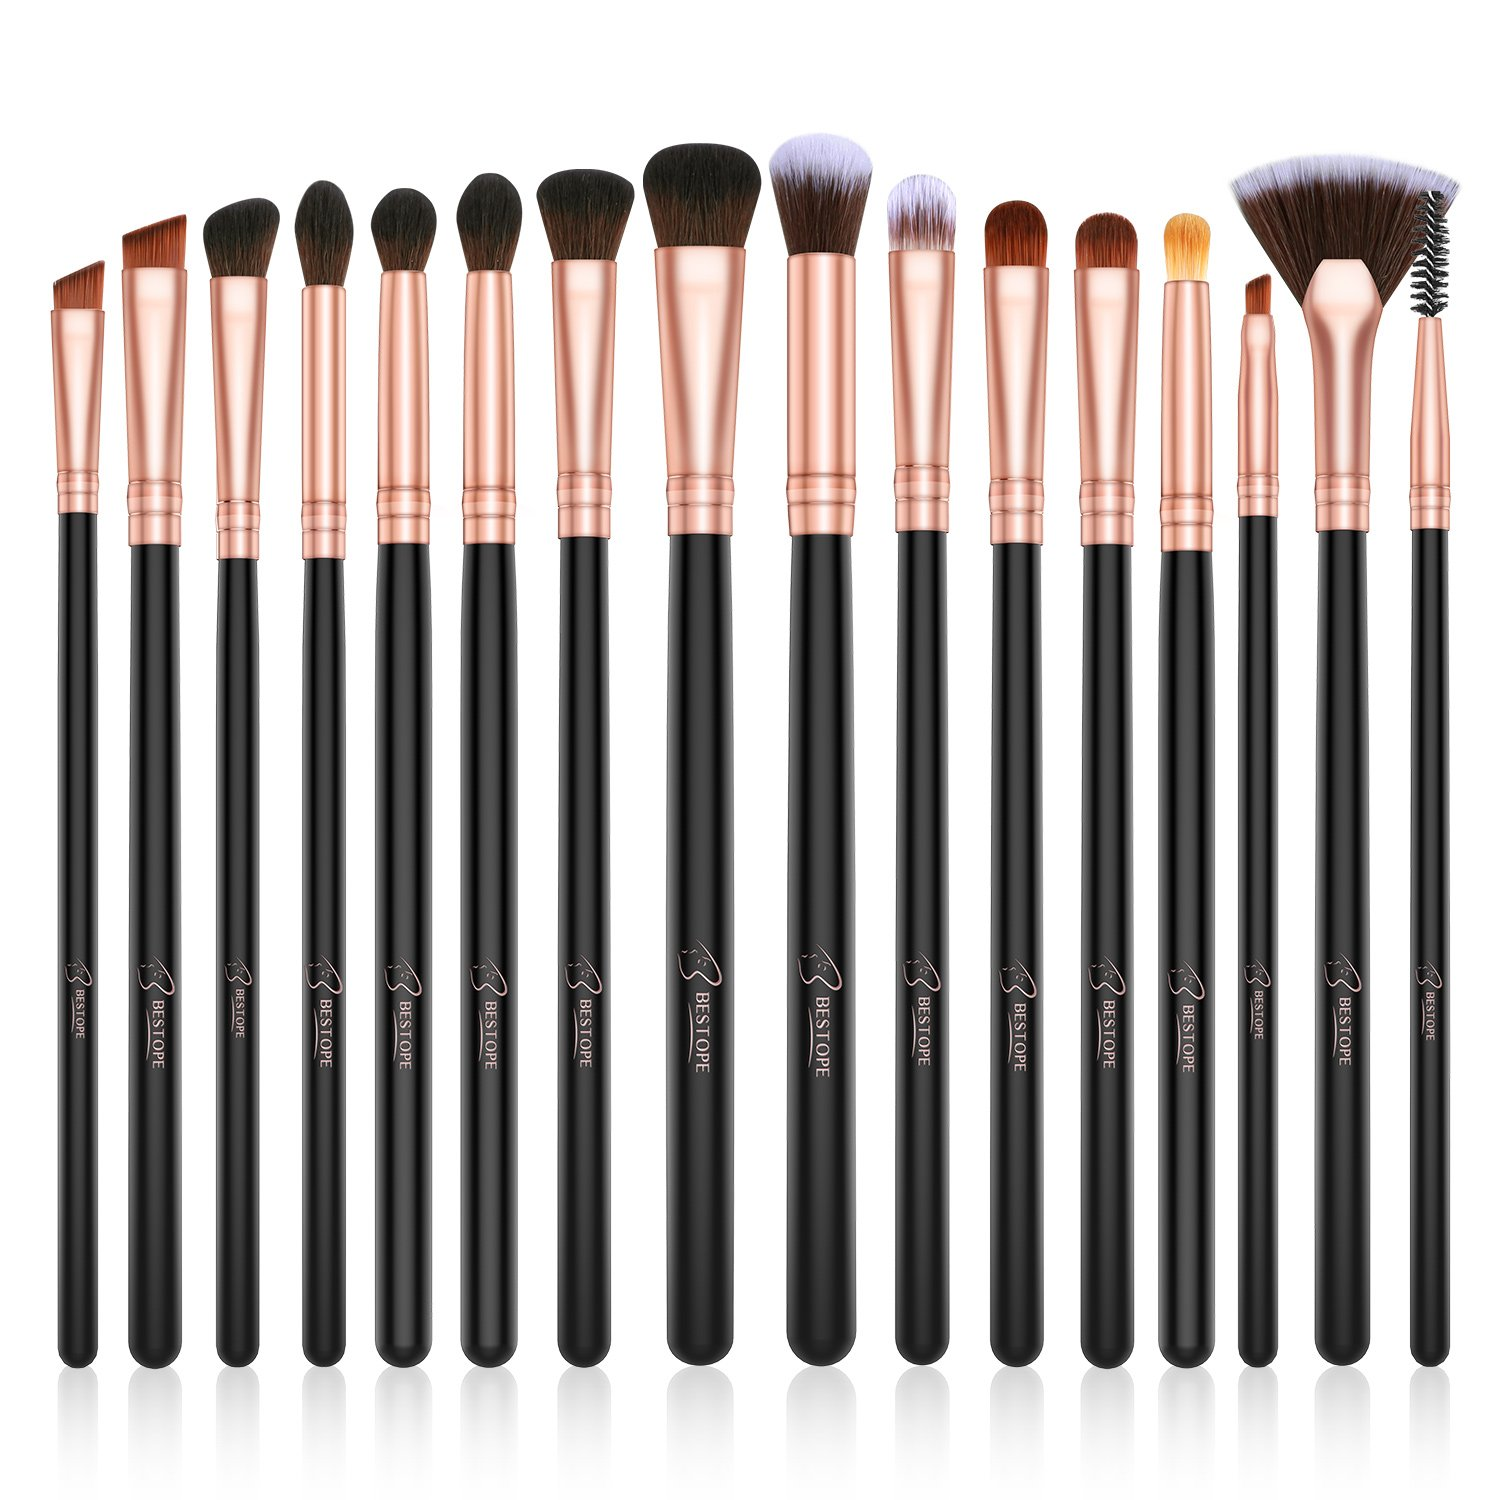 BESTOPE Eye Makeup Brushes Set, 16 Pieces Professional Cosmetics Brush, Eye Shadow, Concealer, Eyebrow, Foundation, Powder Liquid Cream Blending Brushes Set with Premium Wooden Handles Ltd.